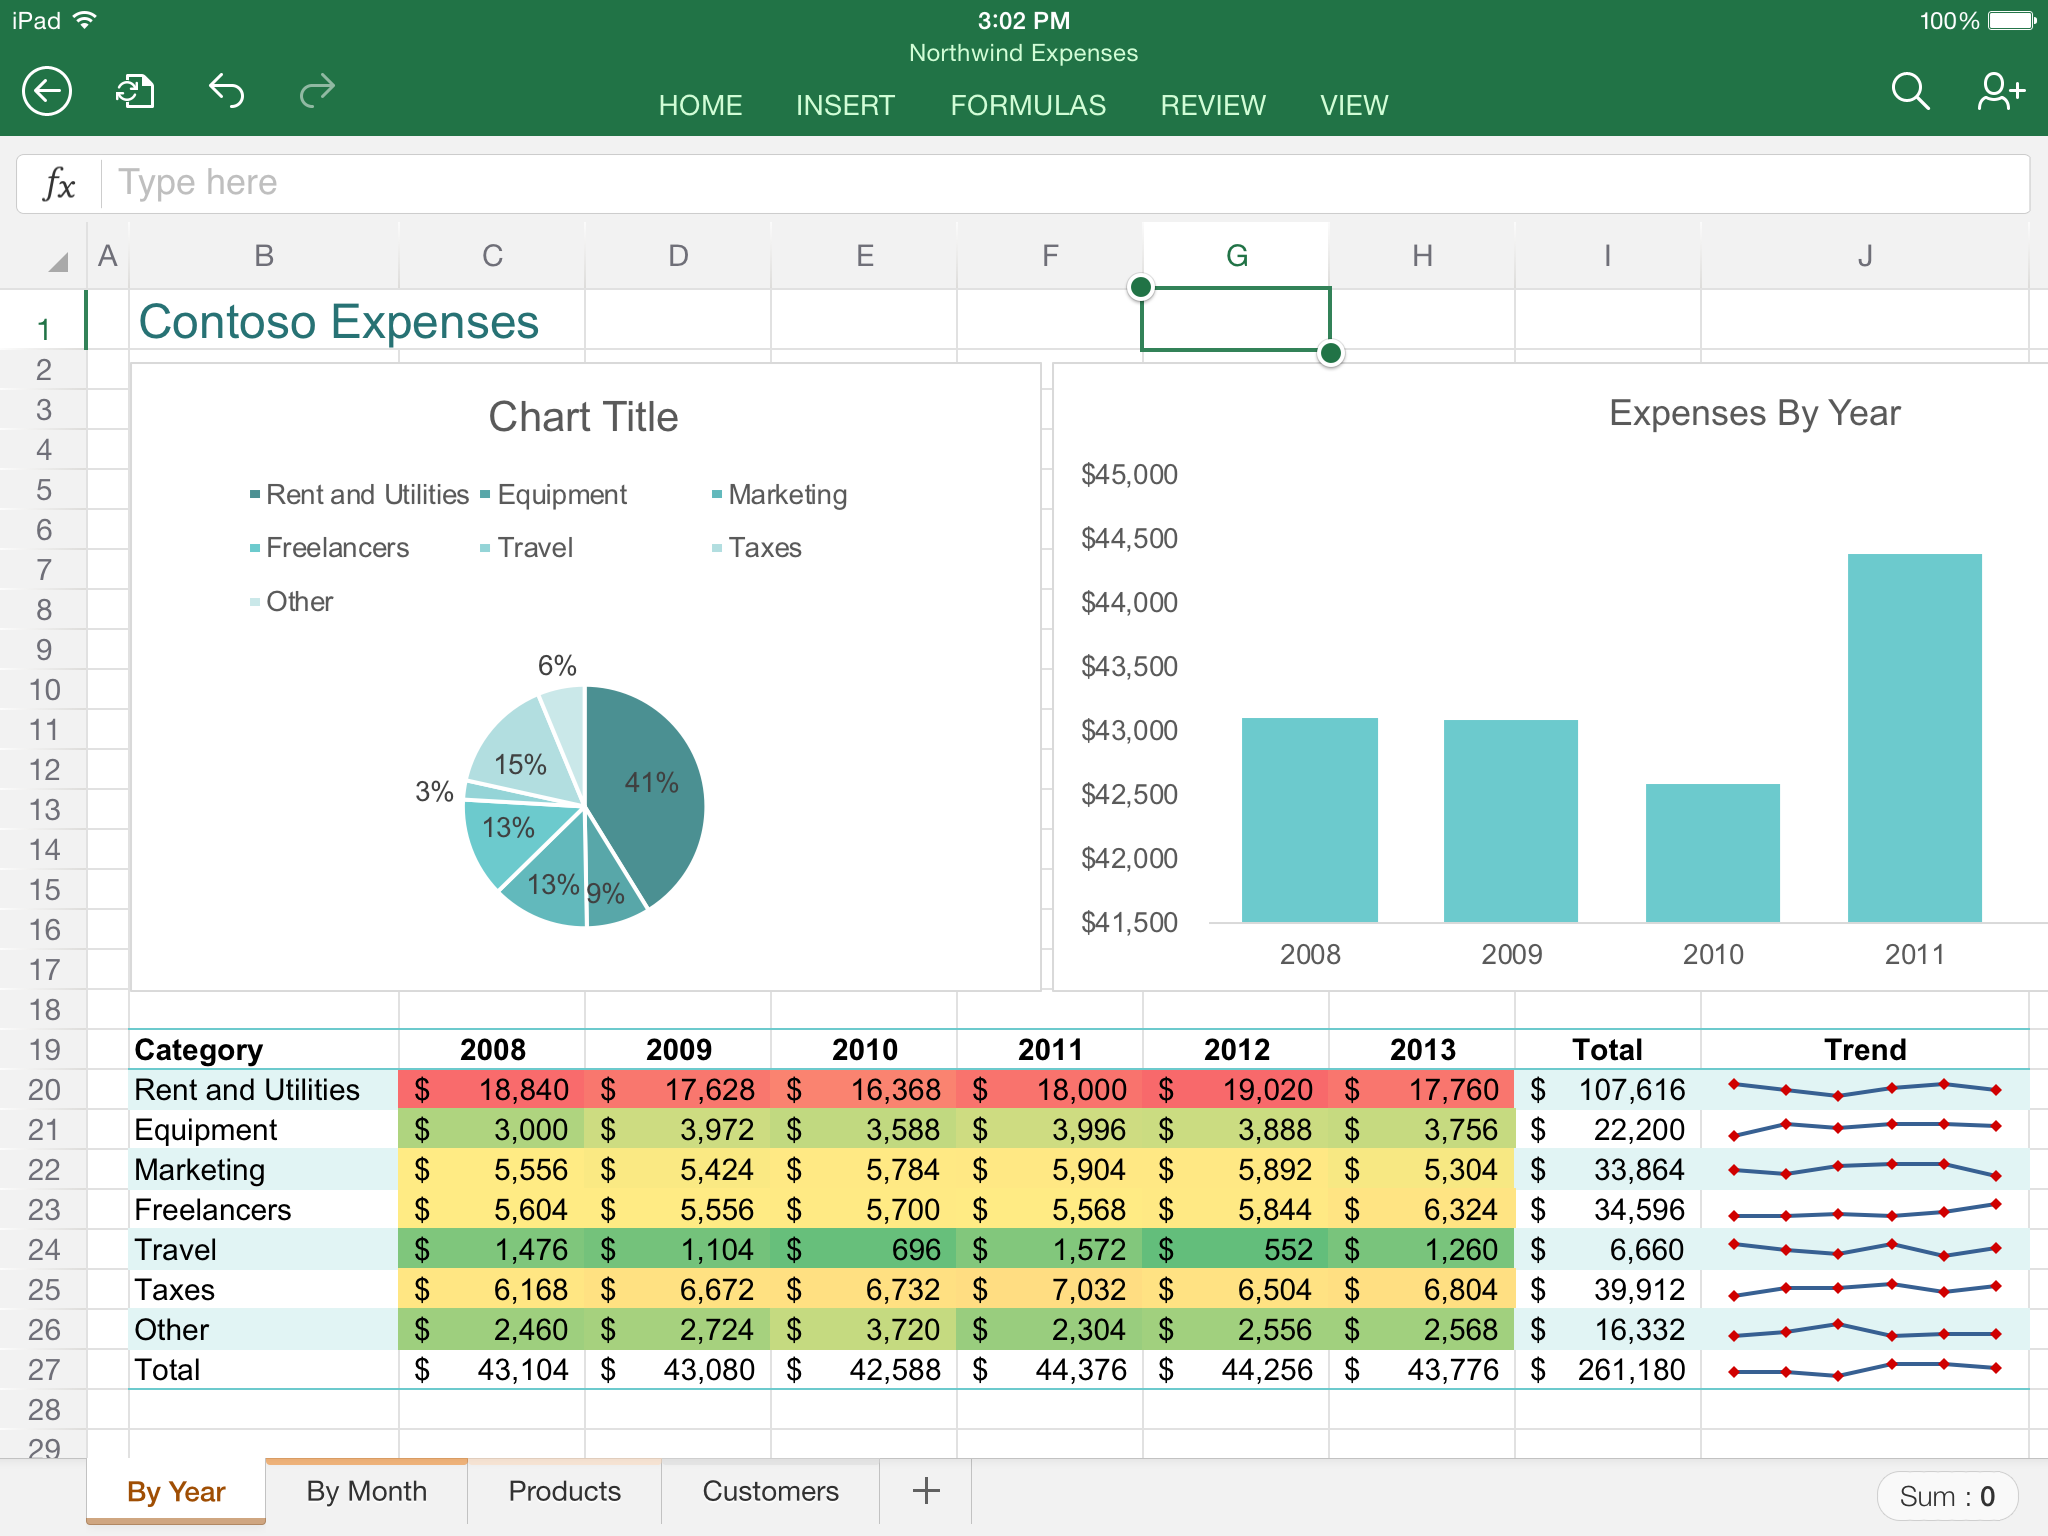 Ediblewildsus  Winsome App Highlight Excel  Mobile Digital Now With Luxury Excel In Action With Adorable Concatenate Two Cells In Excel Also Circular Reference In Excel In Addition What Does Sumproduct Do In Excel And What Type Of Software Is Microsoft Excel As Well As Order Sheets In Excel Additionally Free Mapping Tool Excel From Youstonybrookedu With Ediblewildsus  Luxury App Highlight Excel  Mobile Digital Now With Adorable Excel In Action And Winsome Concatenate Two Cells In Excel Also Circular Reference In Excel In Addition What Does Sumproduct Do In Excel From Youstonybrookedu